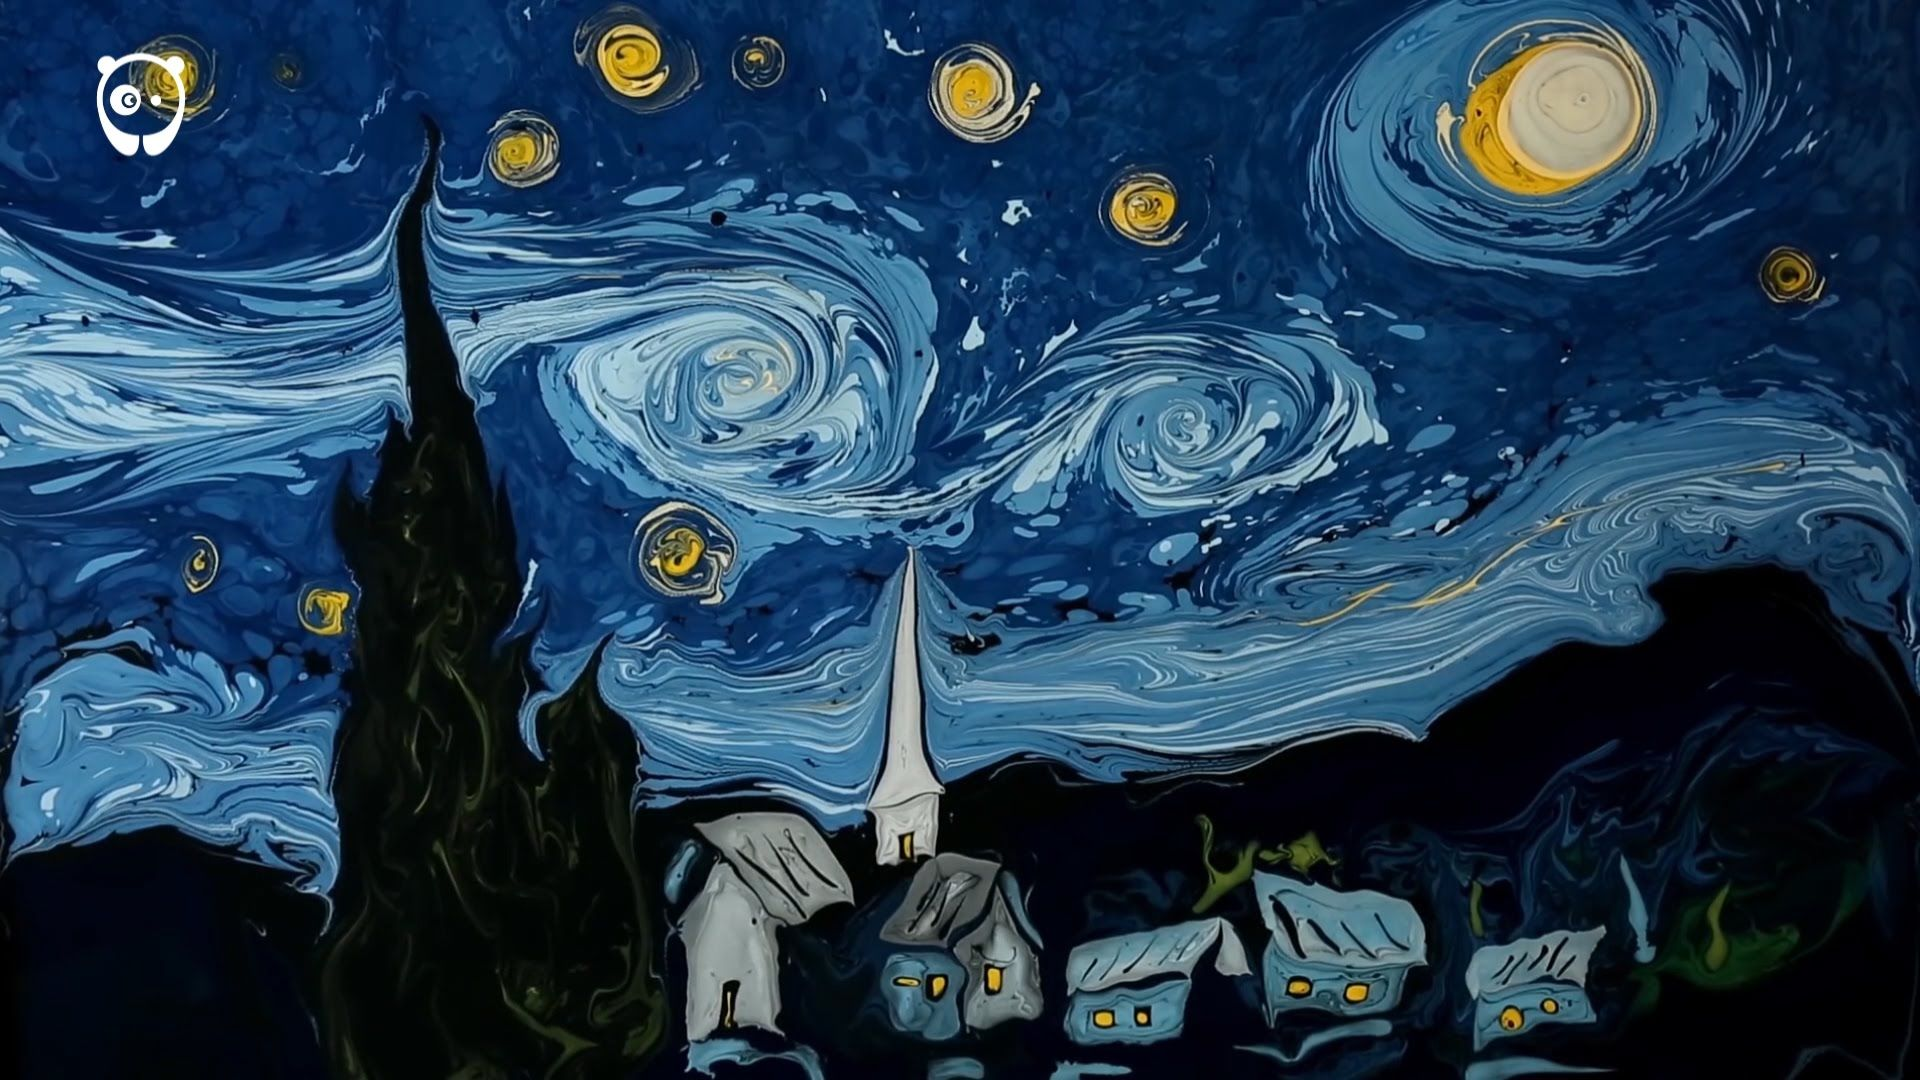 On The First Painting, It Make The Replication Of Van Goghs Paintings Are Of